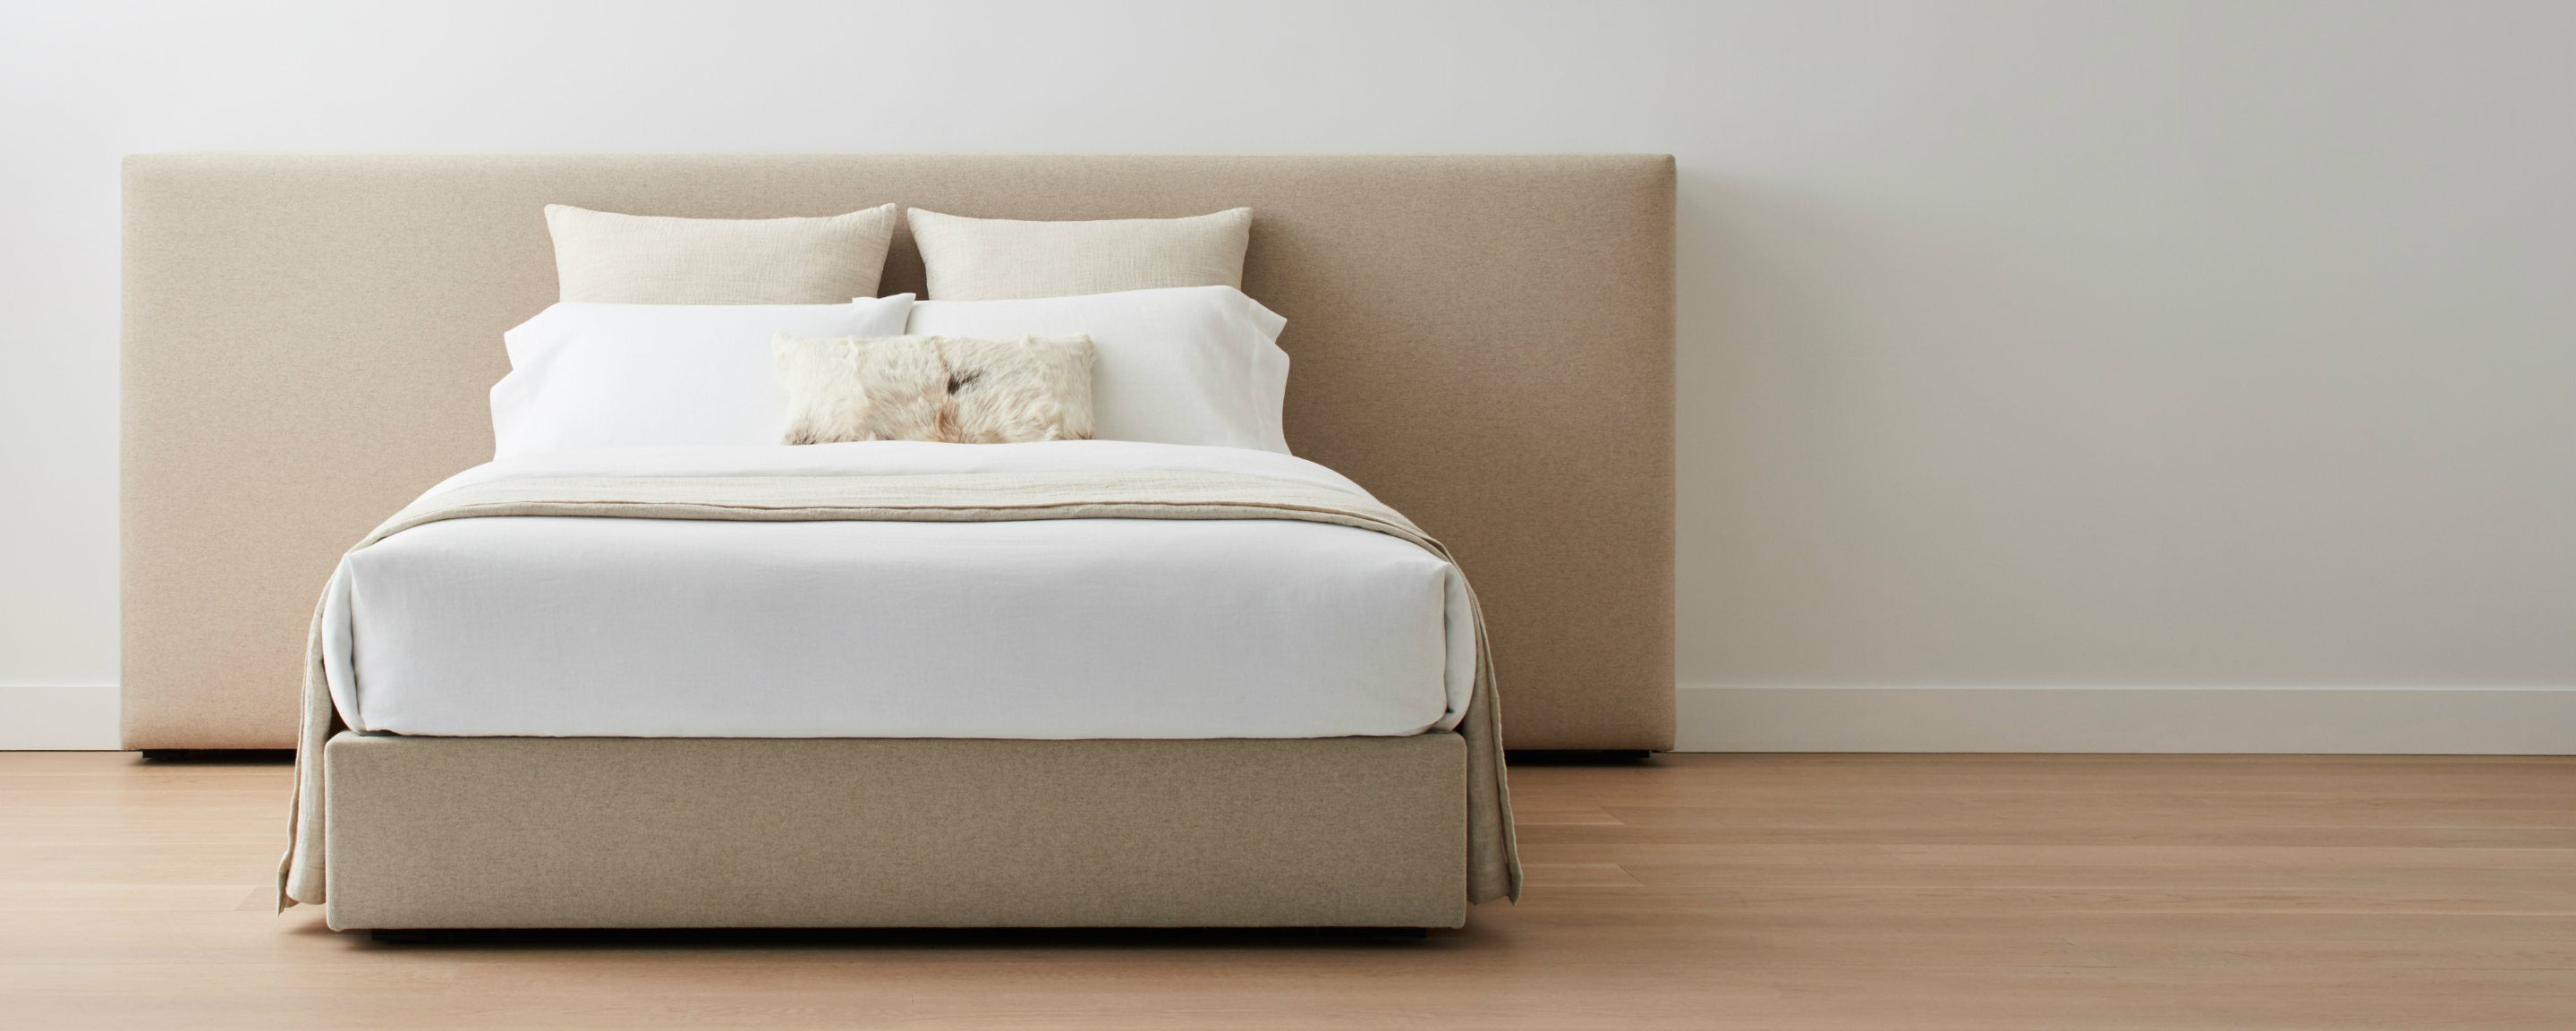 lazy point bed, extended